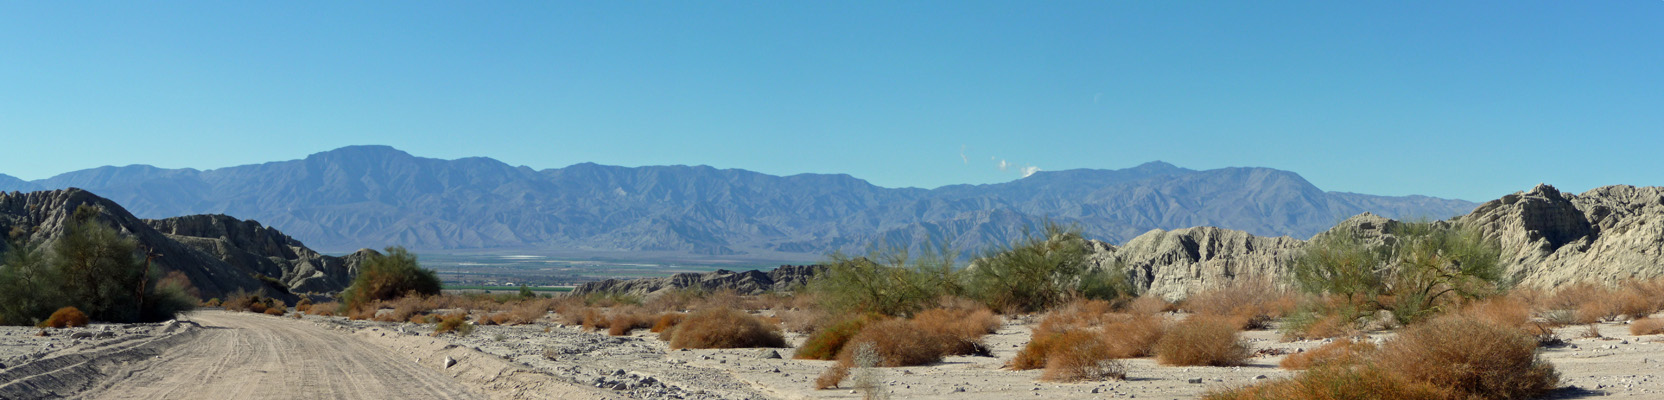 Little San Bernardino Range and Choachella Valley CA